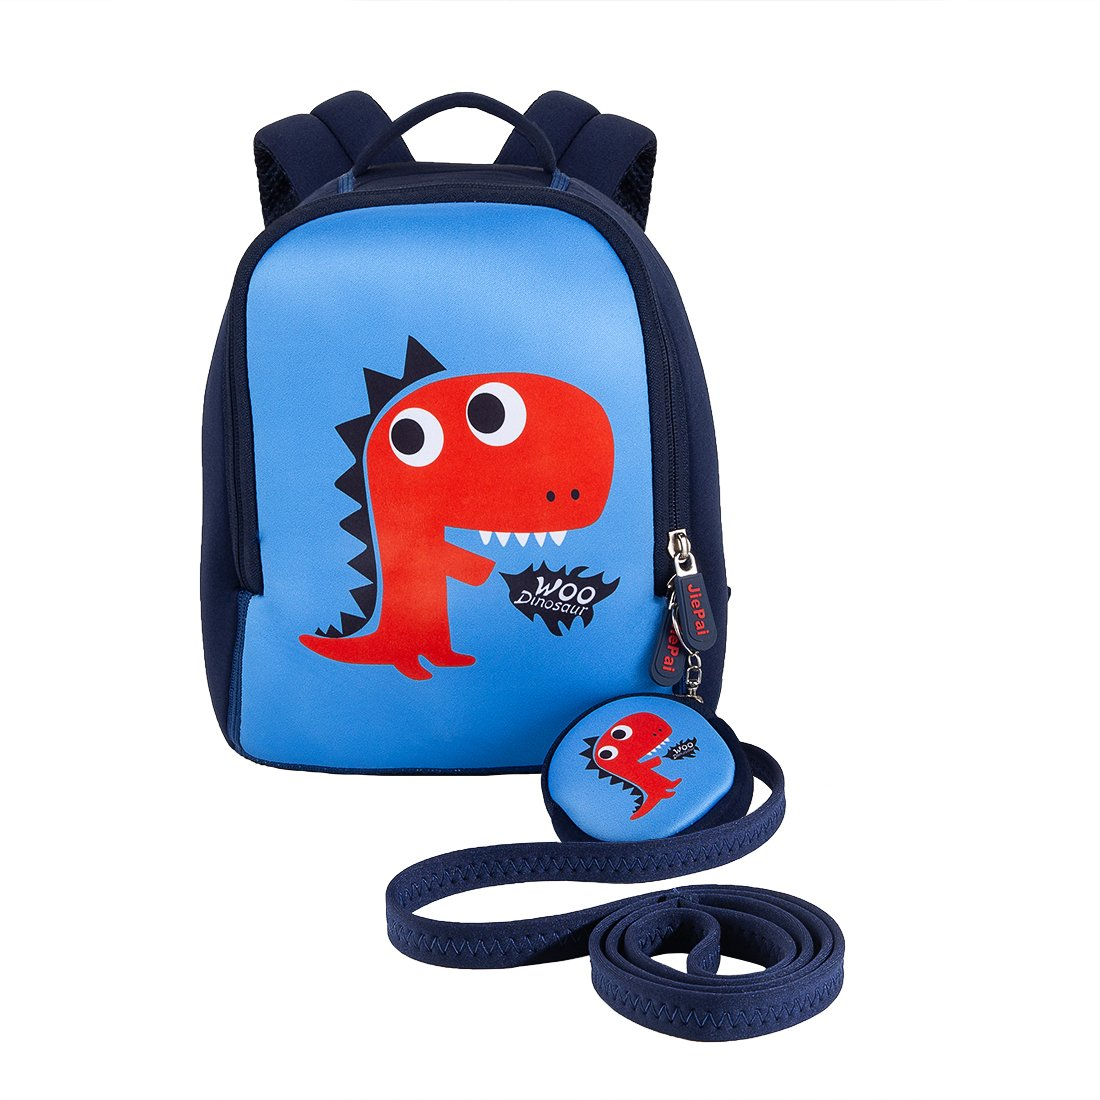 9b63307e98 JiePai Toddler Kids Backpack with Safety Harness Leash